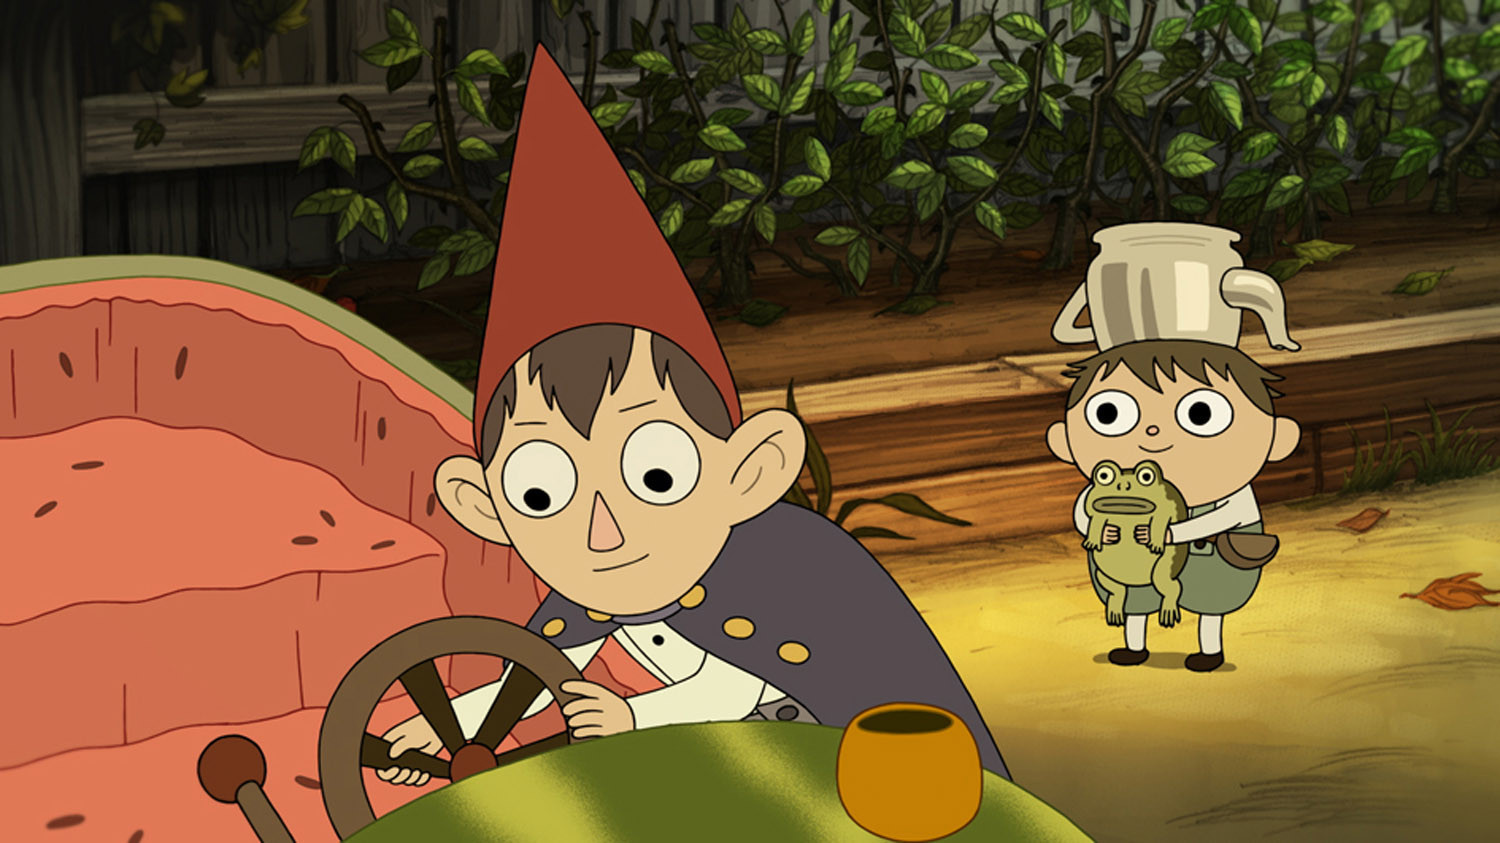 39 over the garden wall 39 gets lost in creator 39 s imagination la times